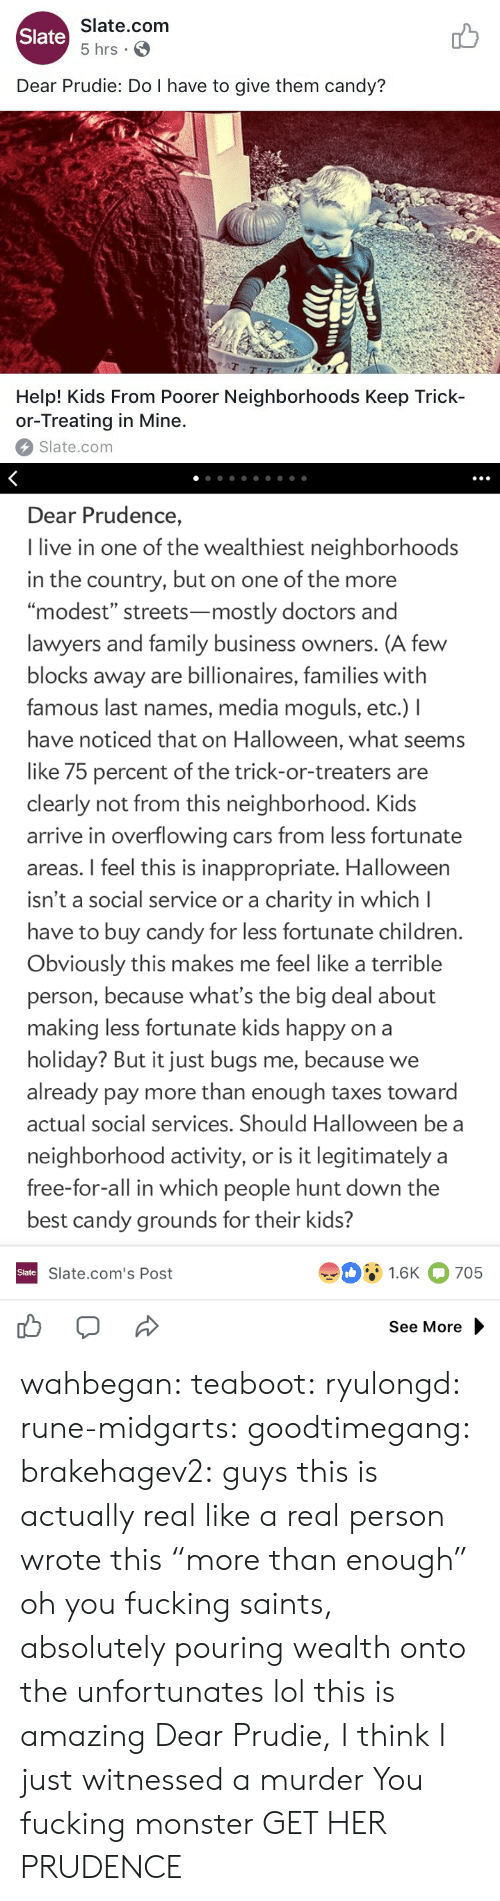 "Candy, Cars, and Children: Slate.com  5 hrs .  Slate  Dear Prudie: Do I have to give them candy?  aT  T-T  Help! Kids From Poorer Neighborhoods Keep Trick-  or-Treating in Mine.  Slate.com   Dear Prudence,  I live in one of the wealthiest neighborhoods  in the country, but on one of the more  ""modest"" streets-mostly doctors and  lawyers and family business owners. (A few  blocks away are billionaires, families with  famous last names, media moguls, etc.) I  have noticed that on Halloween, what seems  like 75 percent of the trick-or-treaters are  clearly not from this neighborhood. Kids  arrive in overflowing cars from less fortunate  areas. I feel this is inappropriate. Halloween  isn't a social service or a charity in which l  have to buy candy for less fortunate children  Obviously this makes me feel like a terrible  person, because what's the big deal about  making less fortunate kids happy on a  holiday? But it just bugs me, because we  already pay more than enough taxes toward  actual social services. Should Halloween be a  neighborhood activity, or is it legitimately a  free-for-all in which people hunt down the  best candy grounds for their kids?  91.6K 705  Slate  Slate.com's Post  See More wahbegan: teaboot:  ryulongd:  rune-midgarts:  goodtimegang:  brakehagev2:  guys this is actually real like a real person wrote this  ""more than enough"" oh you fucking saints, absolutely pouring wealth onto the unfortunates   lol this is amazing   Dear Prudie, I think I just witnessed a murder  You fucking monster  GET HER PRUDENCE"